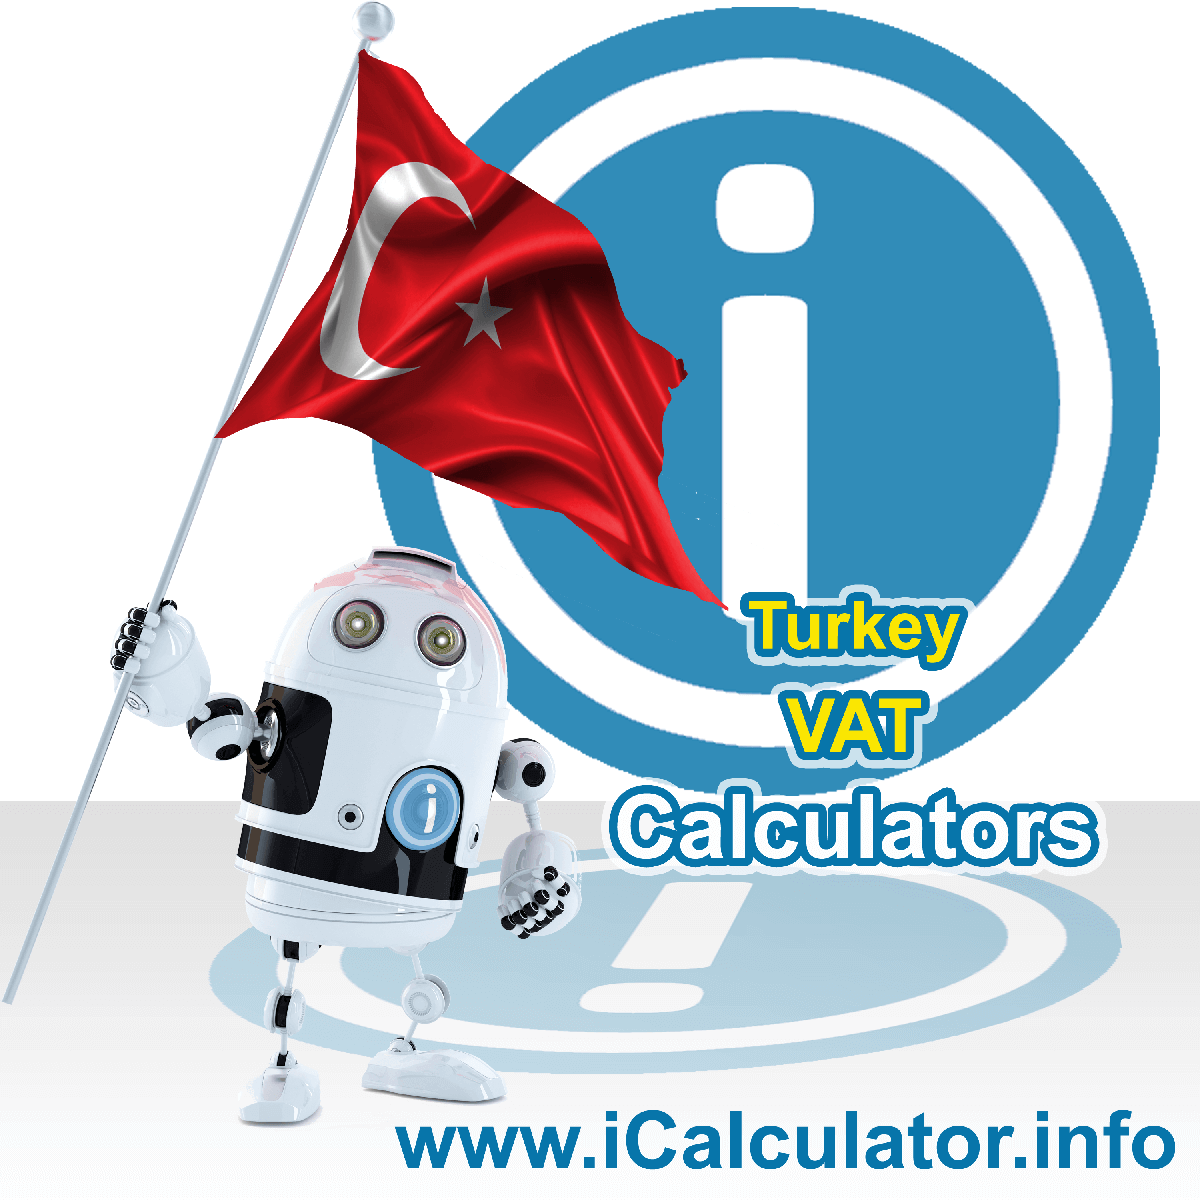 Turkey VAT Calculator. This image shows the Turkey flag and information relating to the VAT formula used for calculating Value Added Tax in Turkey using the Turkey VAT Calculator in 2020